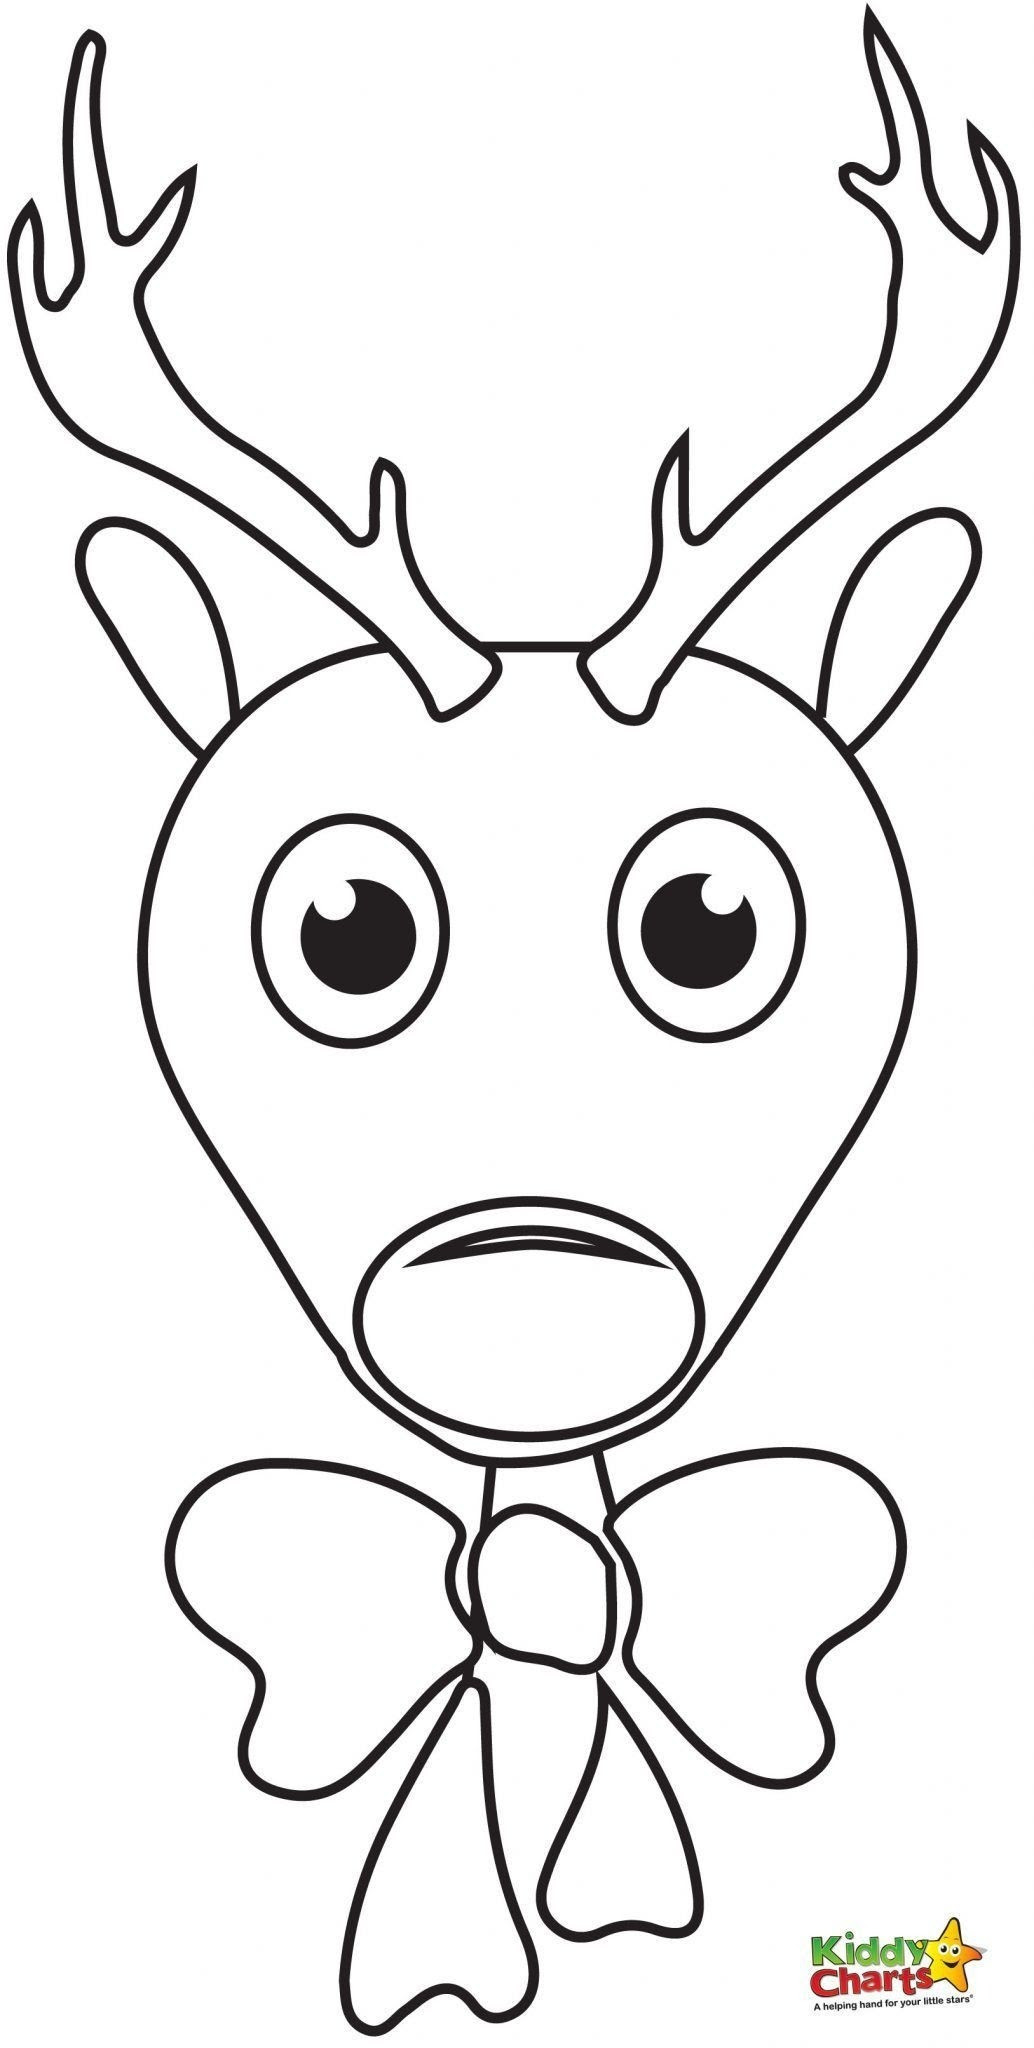 Cute Rudolph Coloring Pages at GetColorings.com | Free ...